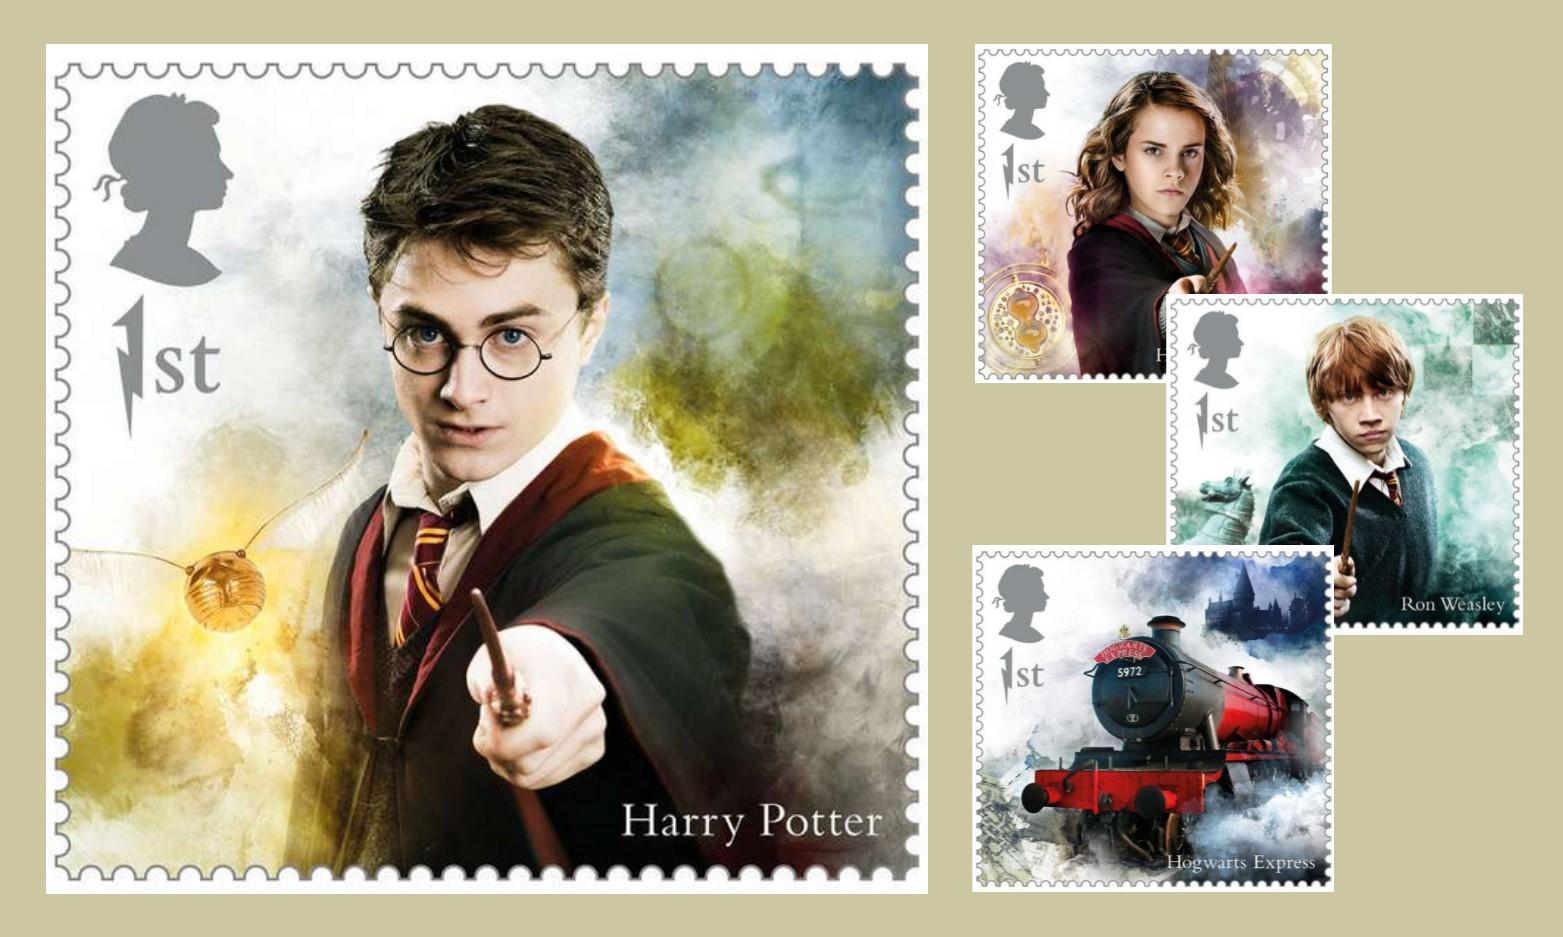 Where to Buy and Who is Featured on the Limited-Edition Harry Potter Stamps